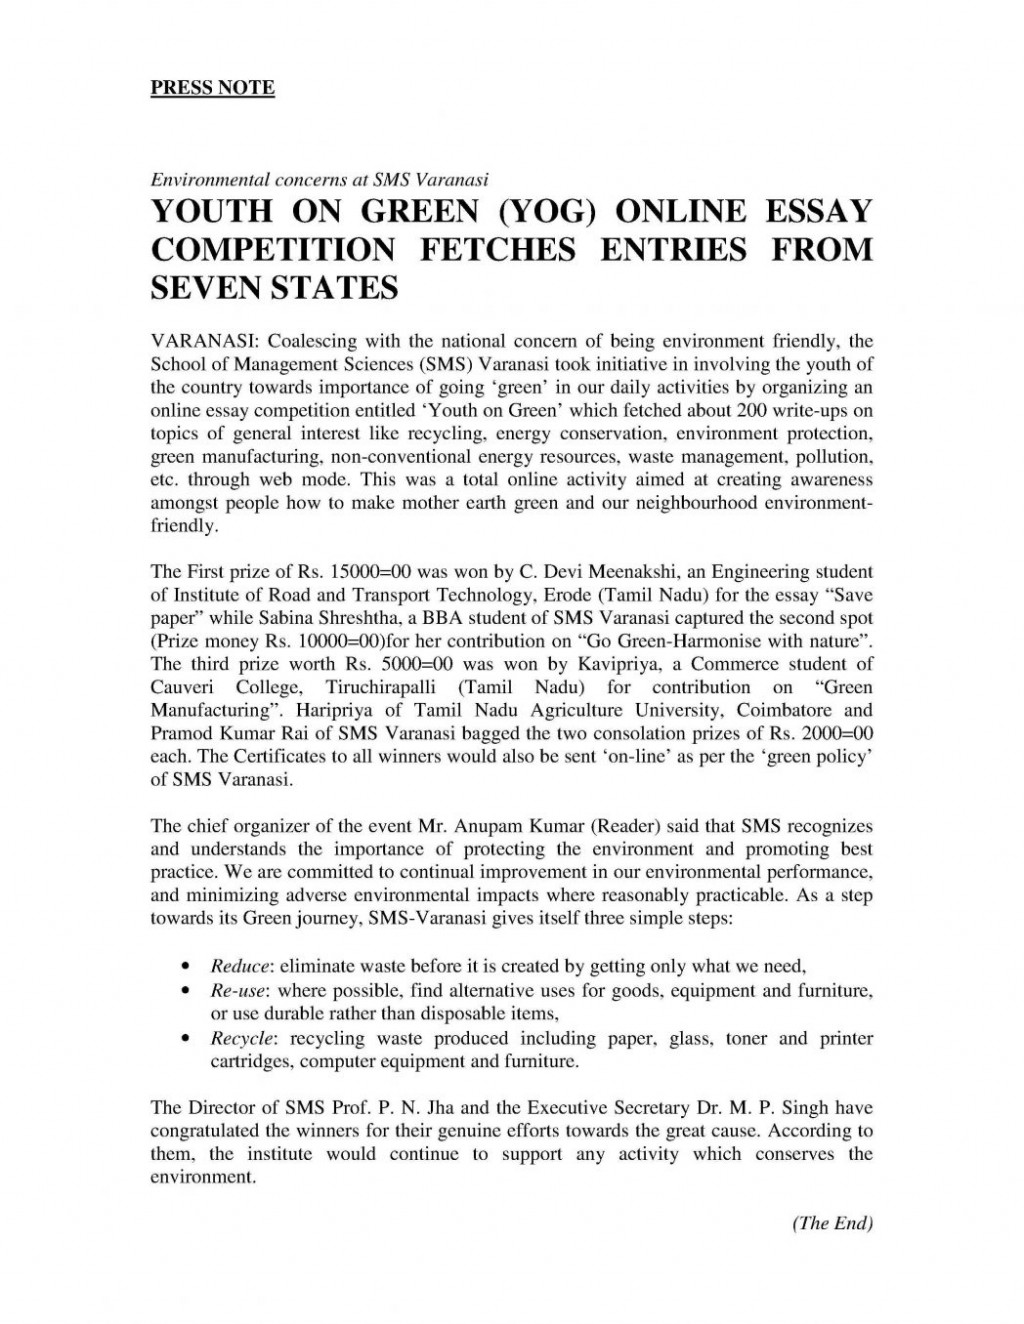 008 Healthy Food Essay Essays Eating Organizations Online Yog Press Re Block 1048x1356 Best On For Class 10 My Favourite 1 In Tamil Large